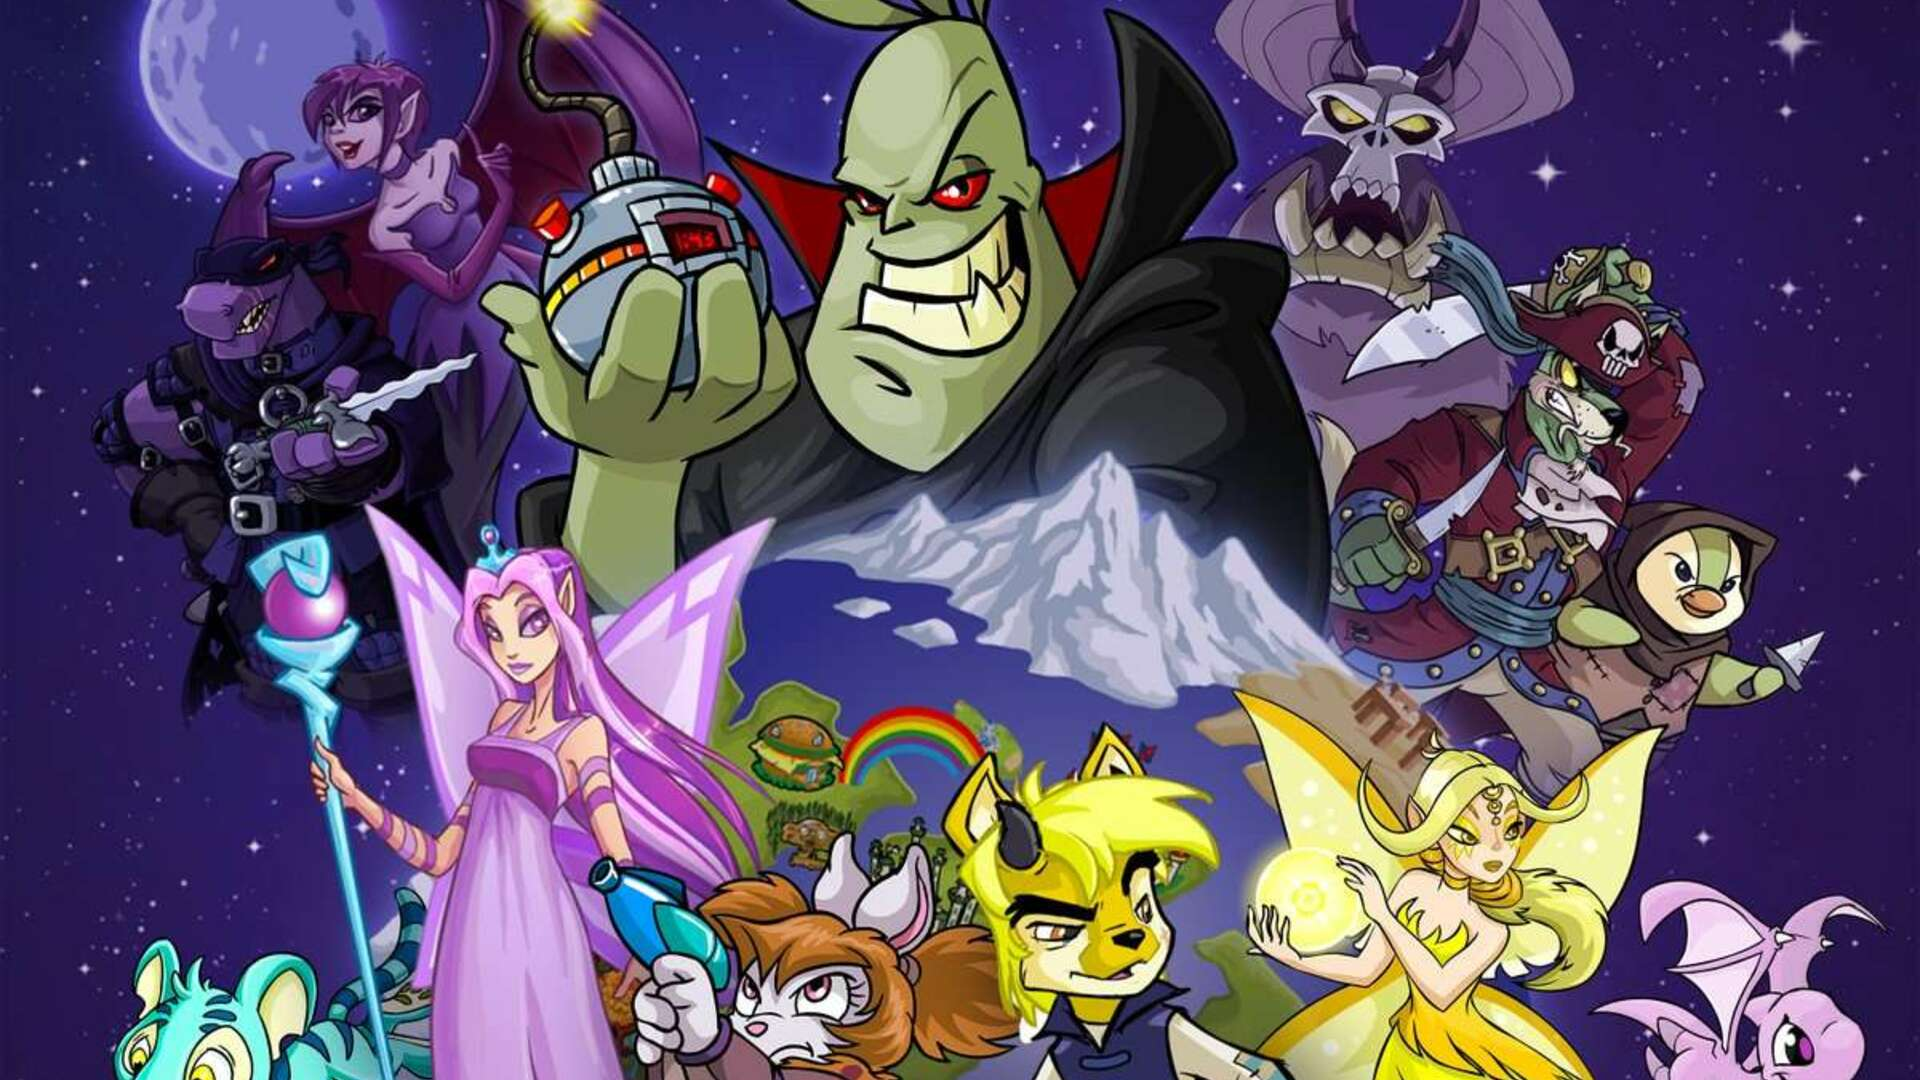 A Neopets Cartoon Is Coming, but Who the Heck Is It For?